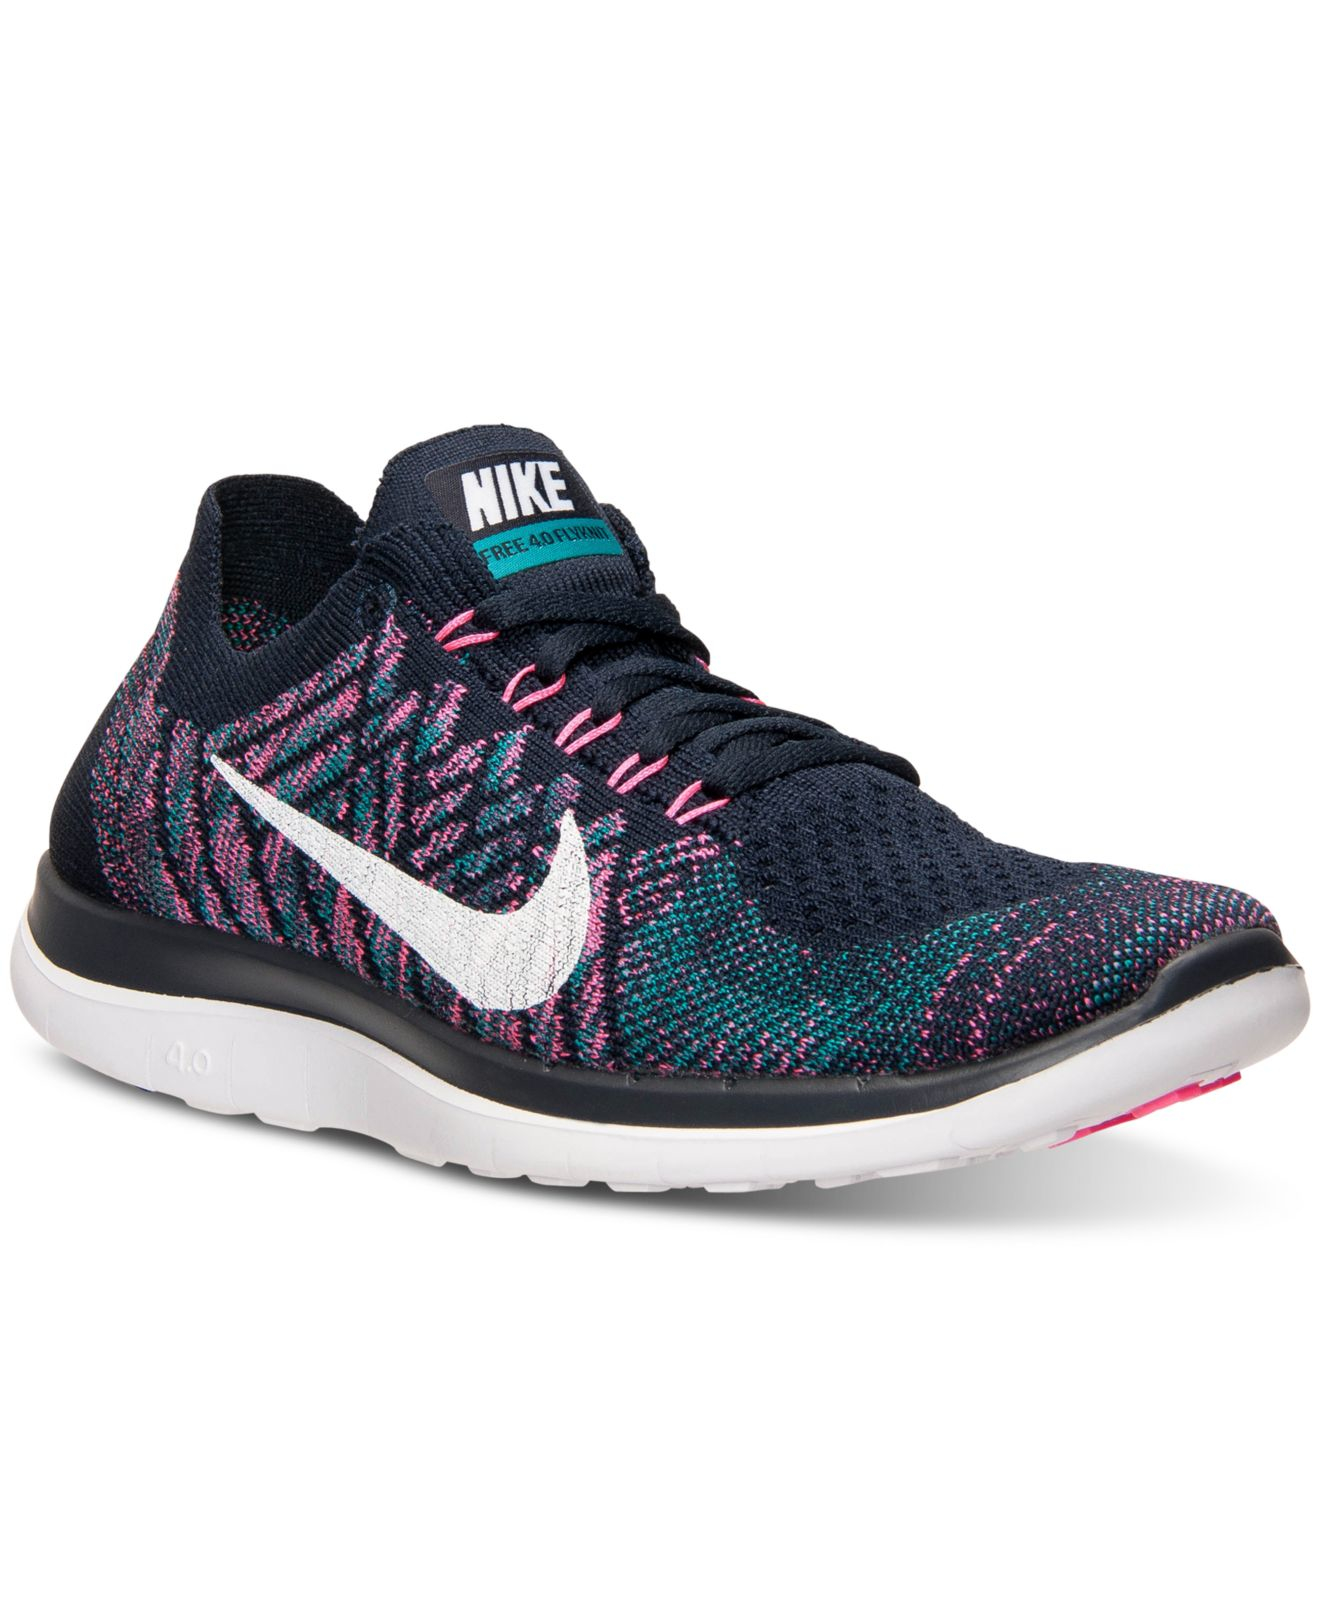 Womens Black And Purple Running Shoes